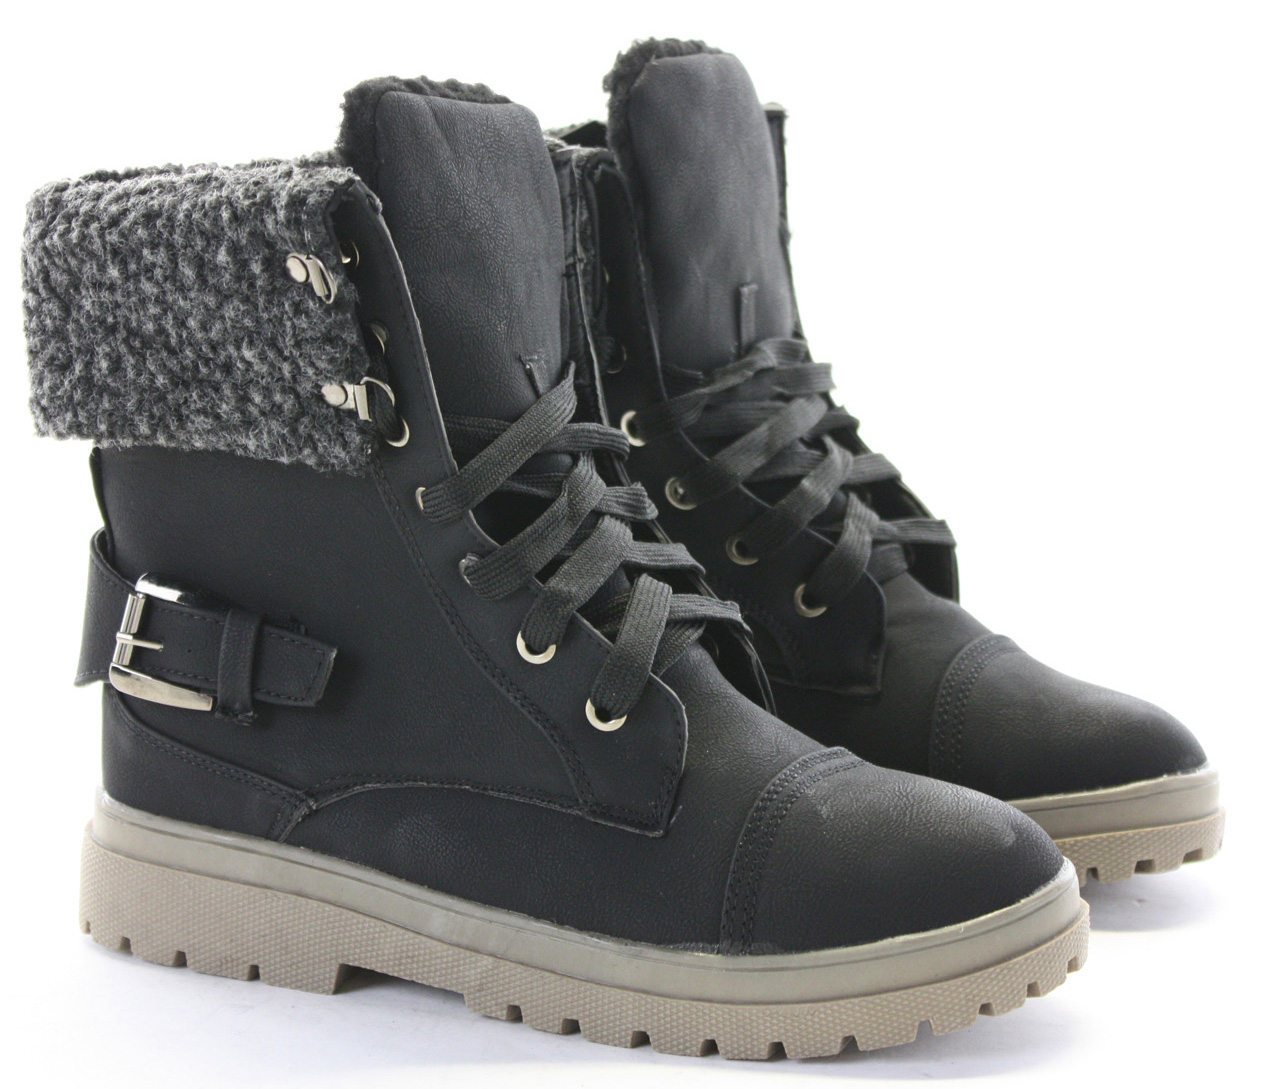 Winter Ankle Boots jVCgSGQb